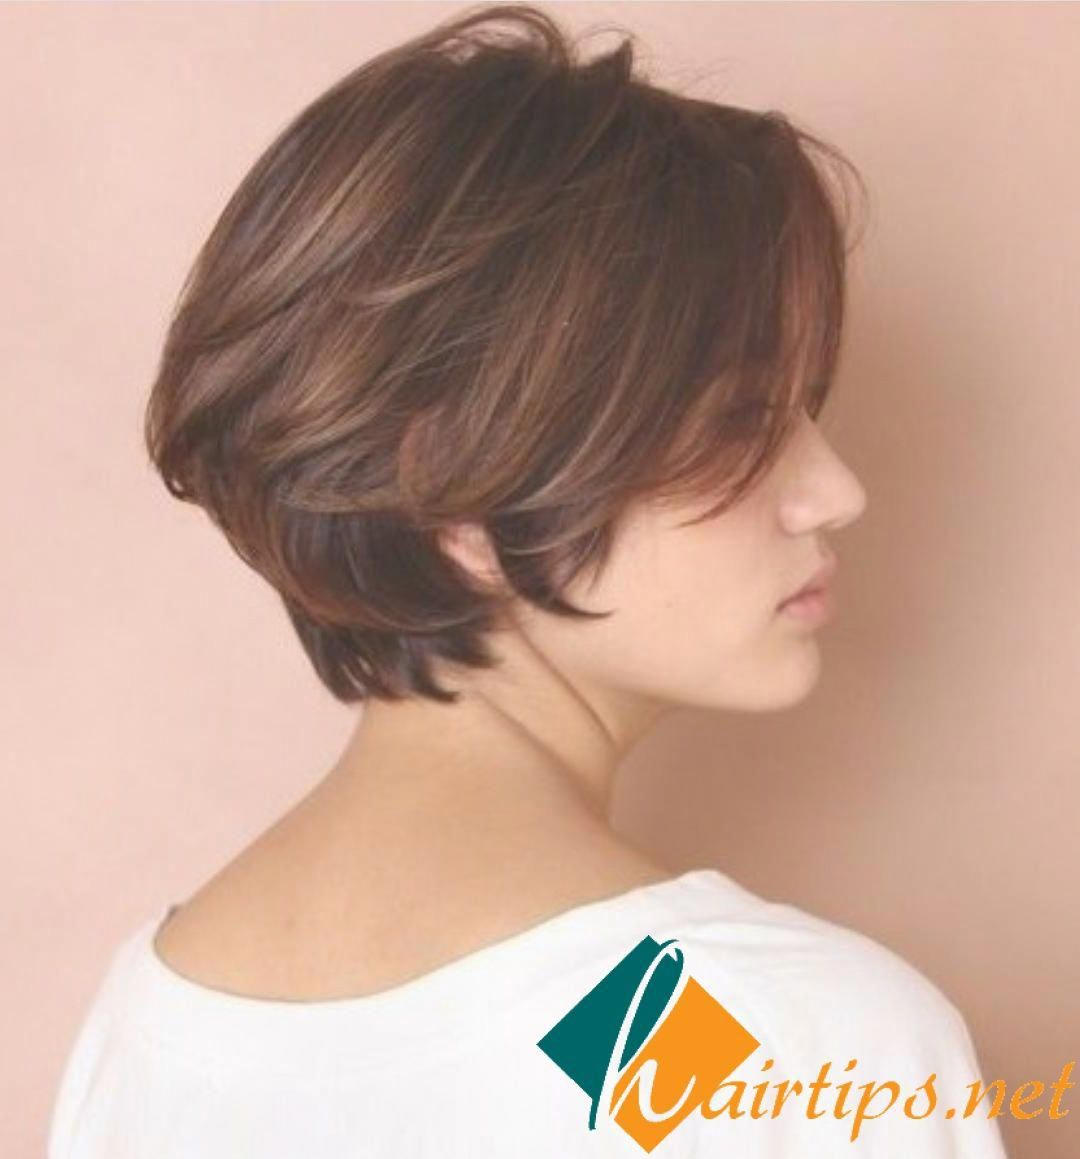 Wearing Your Long Bob Hairstyles in Different Ways #howtobobhairstyles | Long bob hairstyles ...